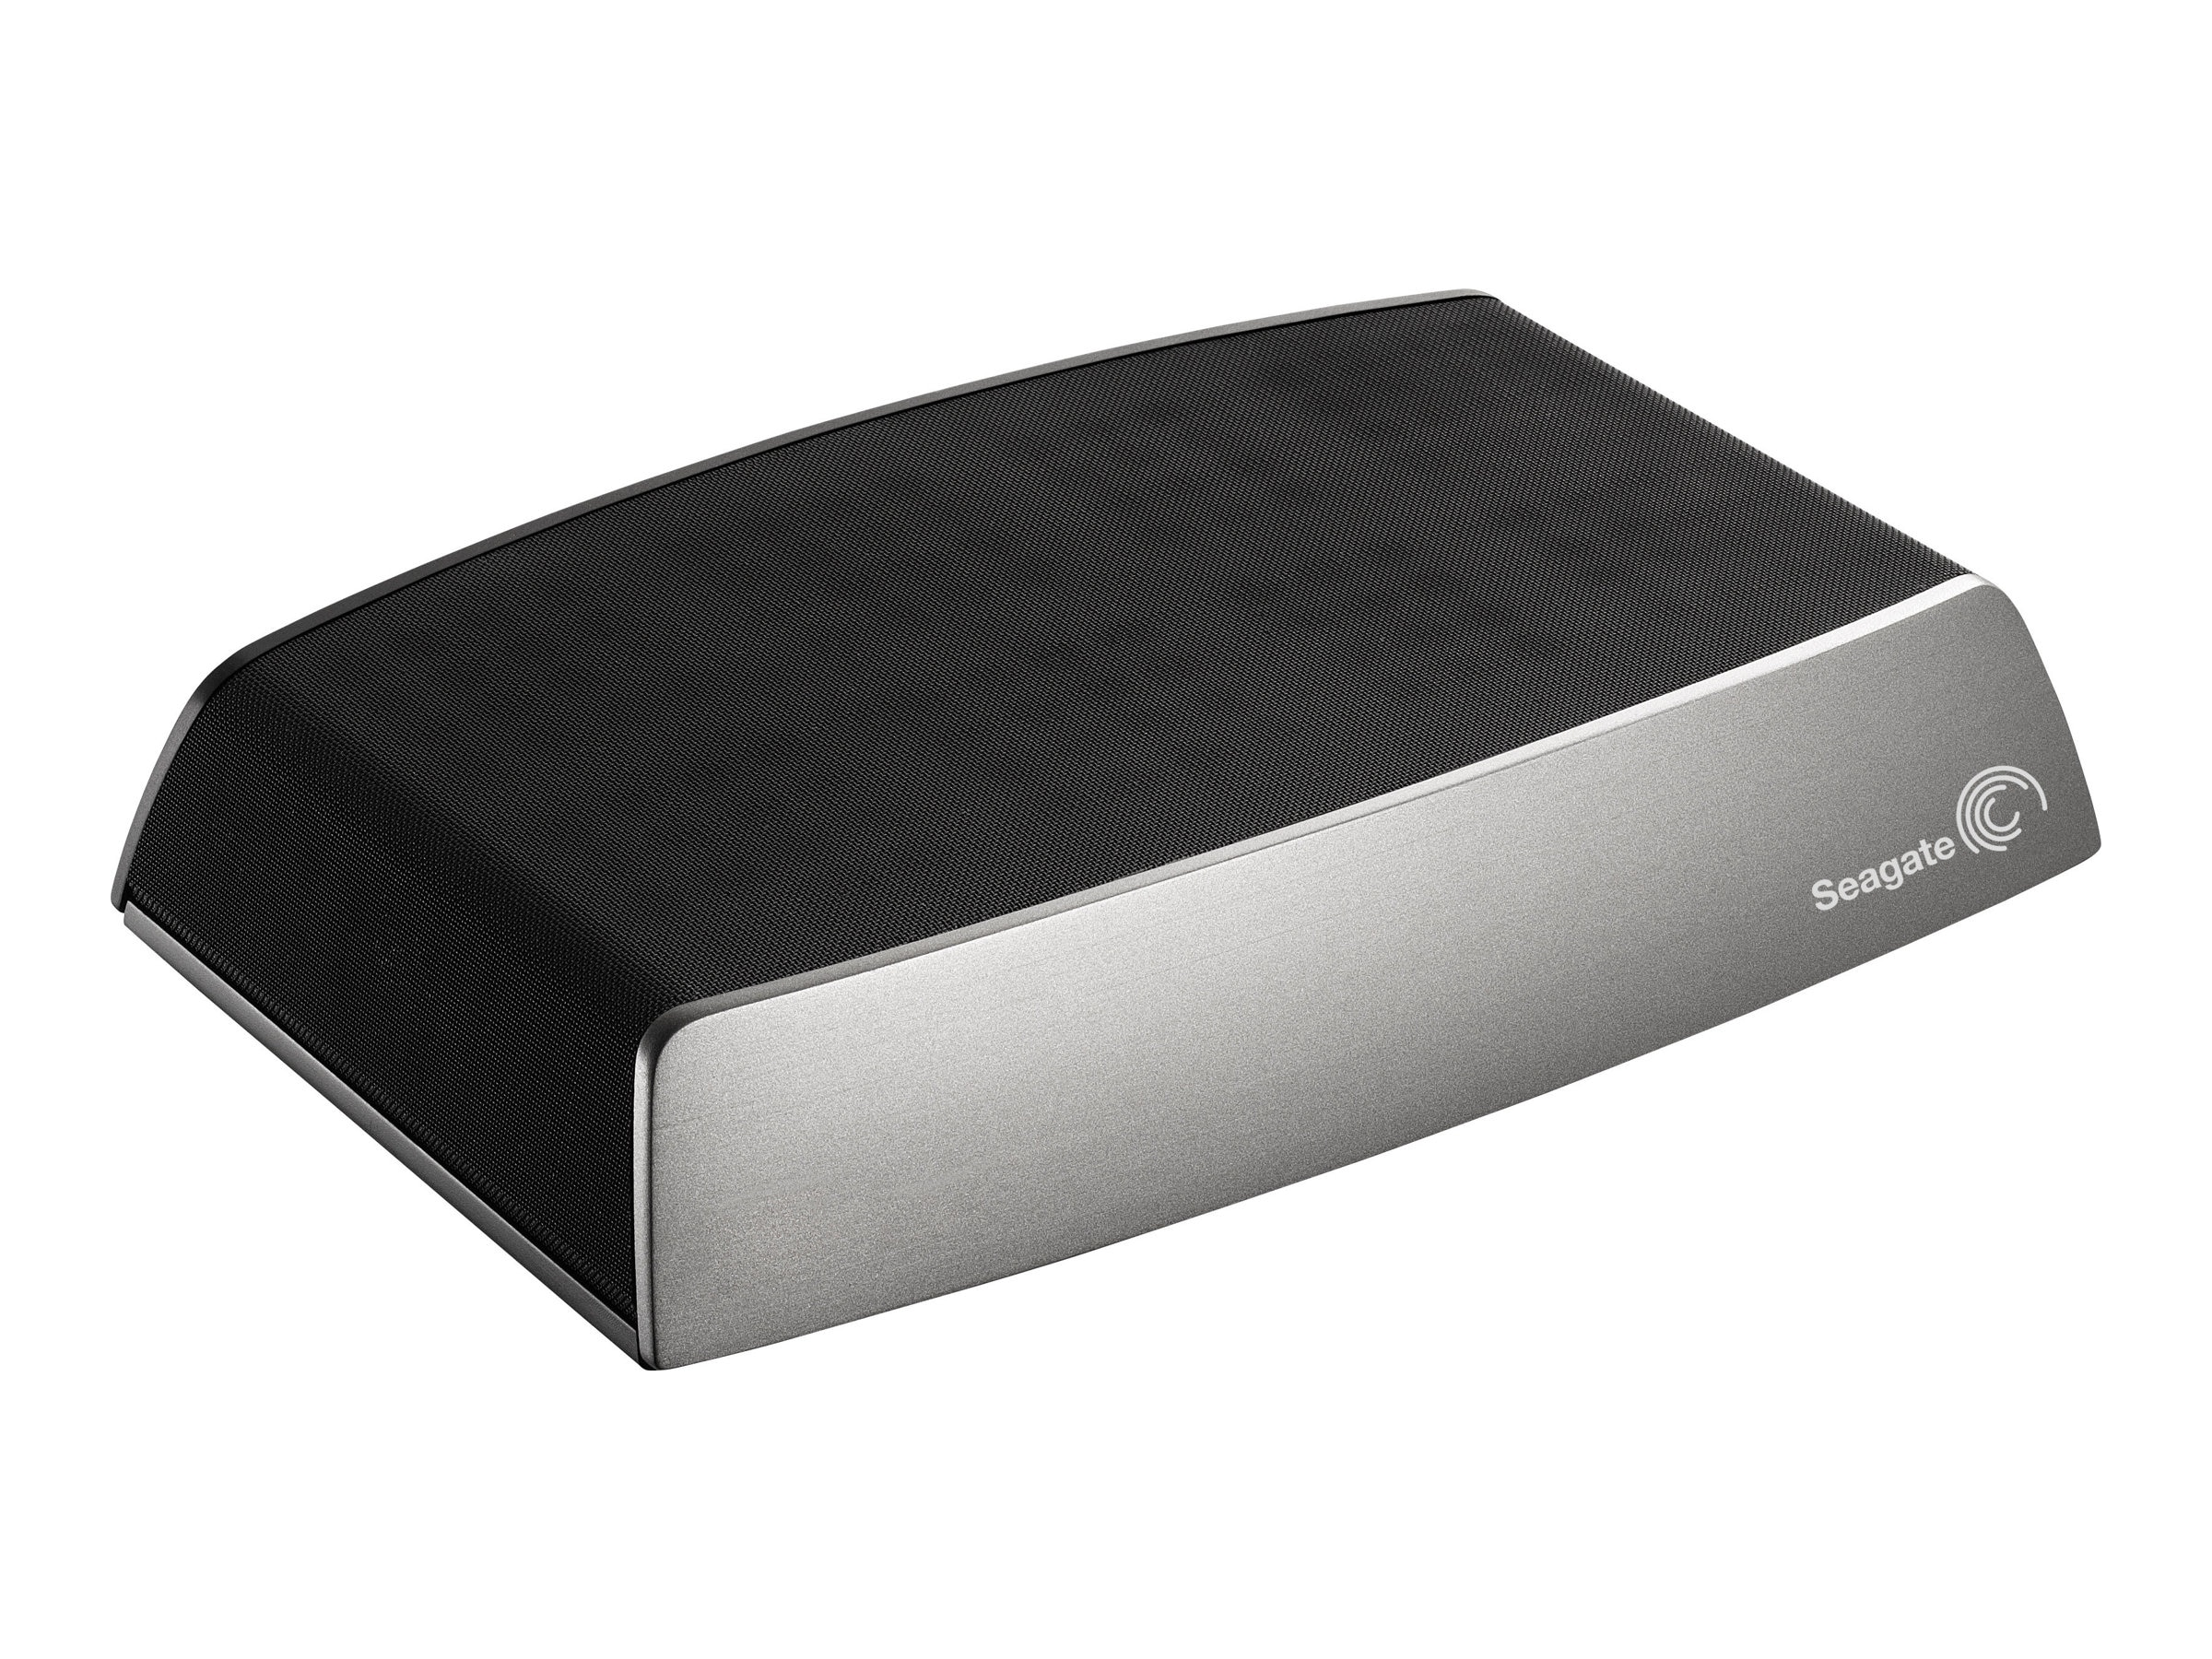 Seagate Technology STCG4000100 Image 1